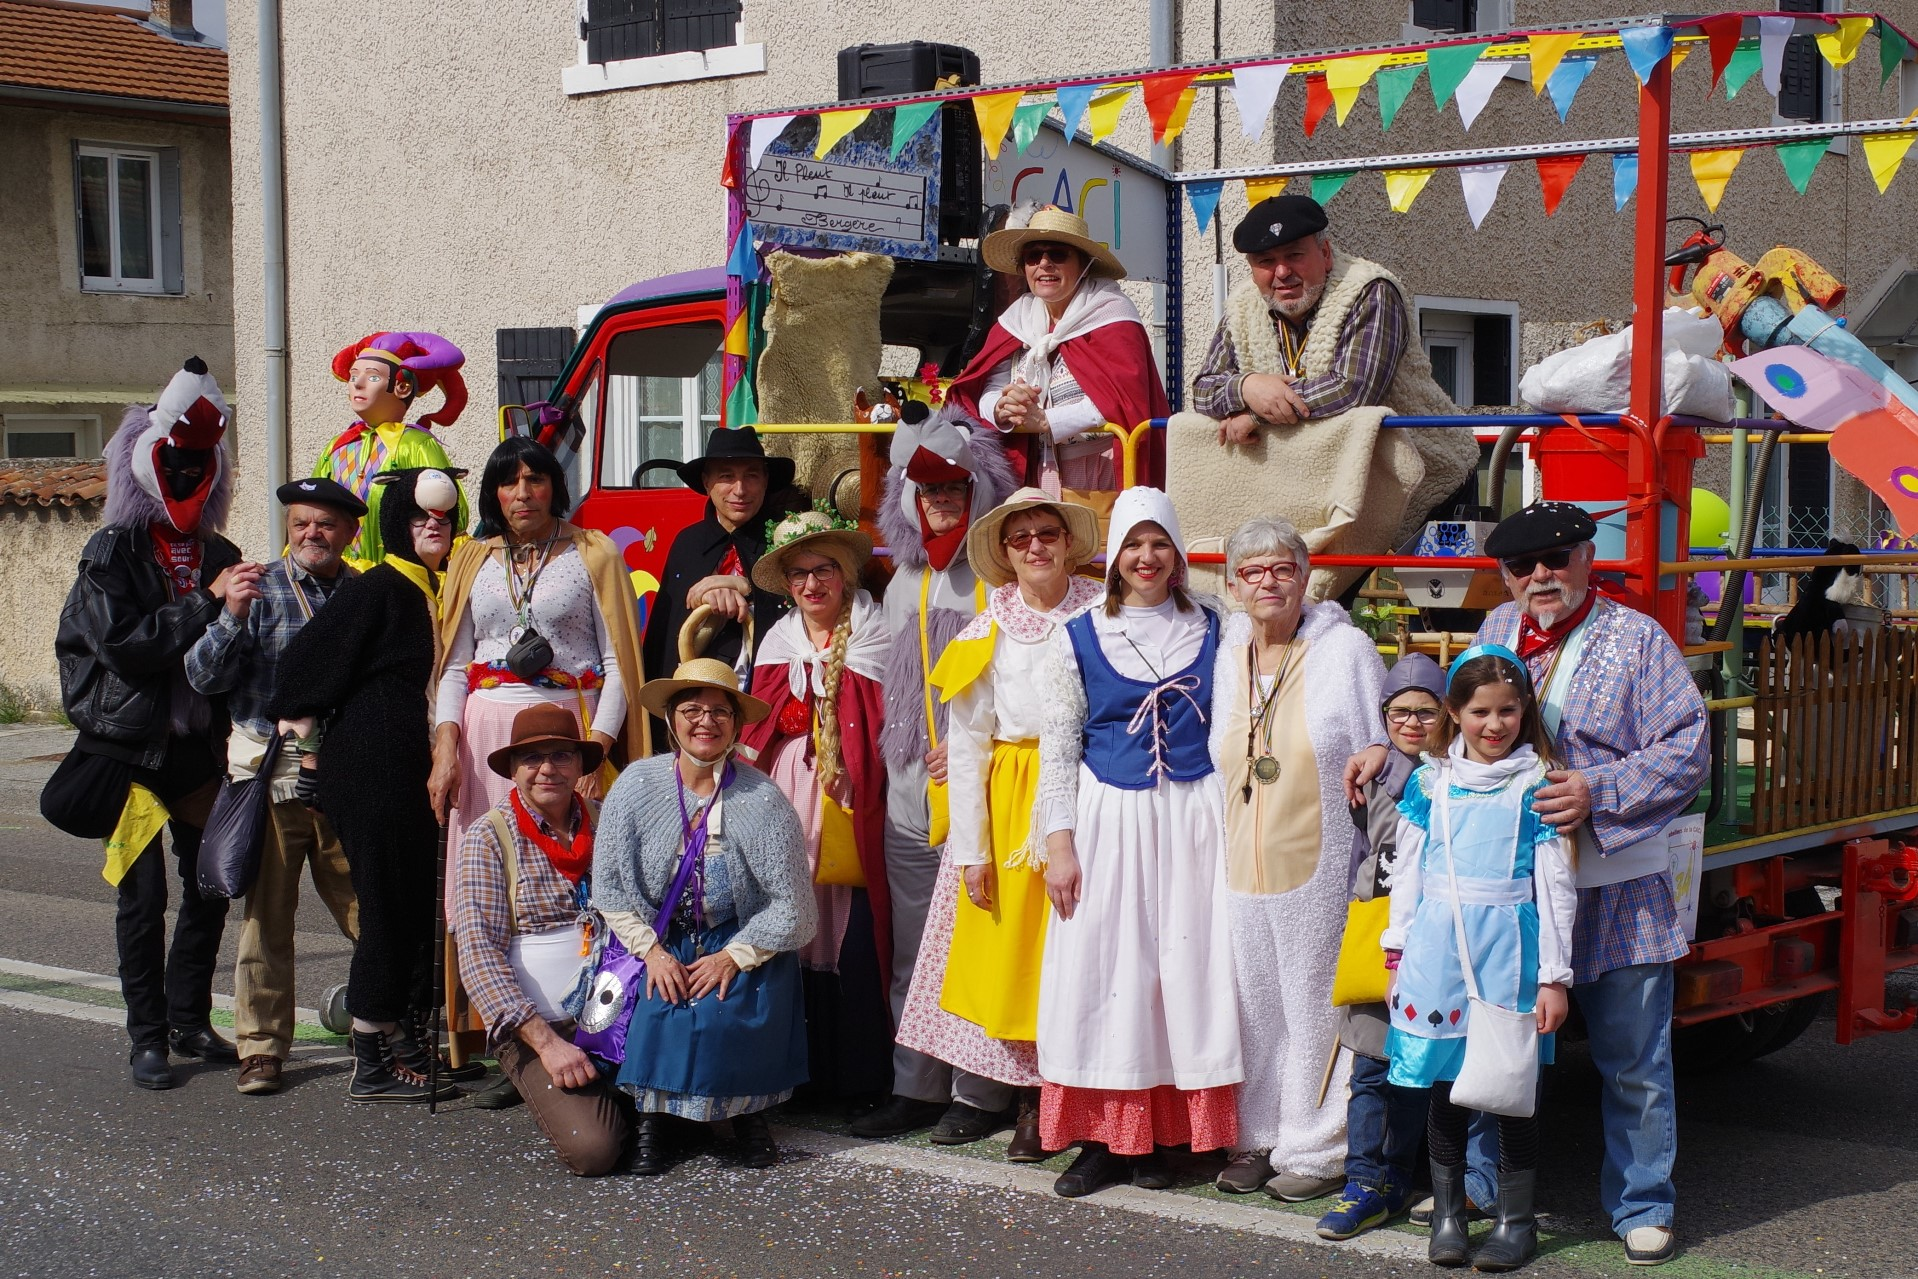 Carnaval de Saint Pierre de Chandieu